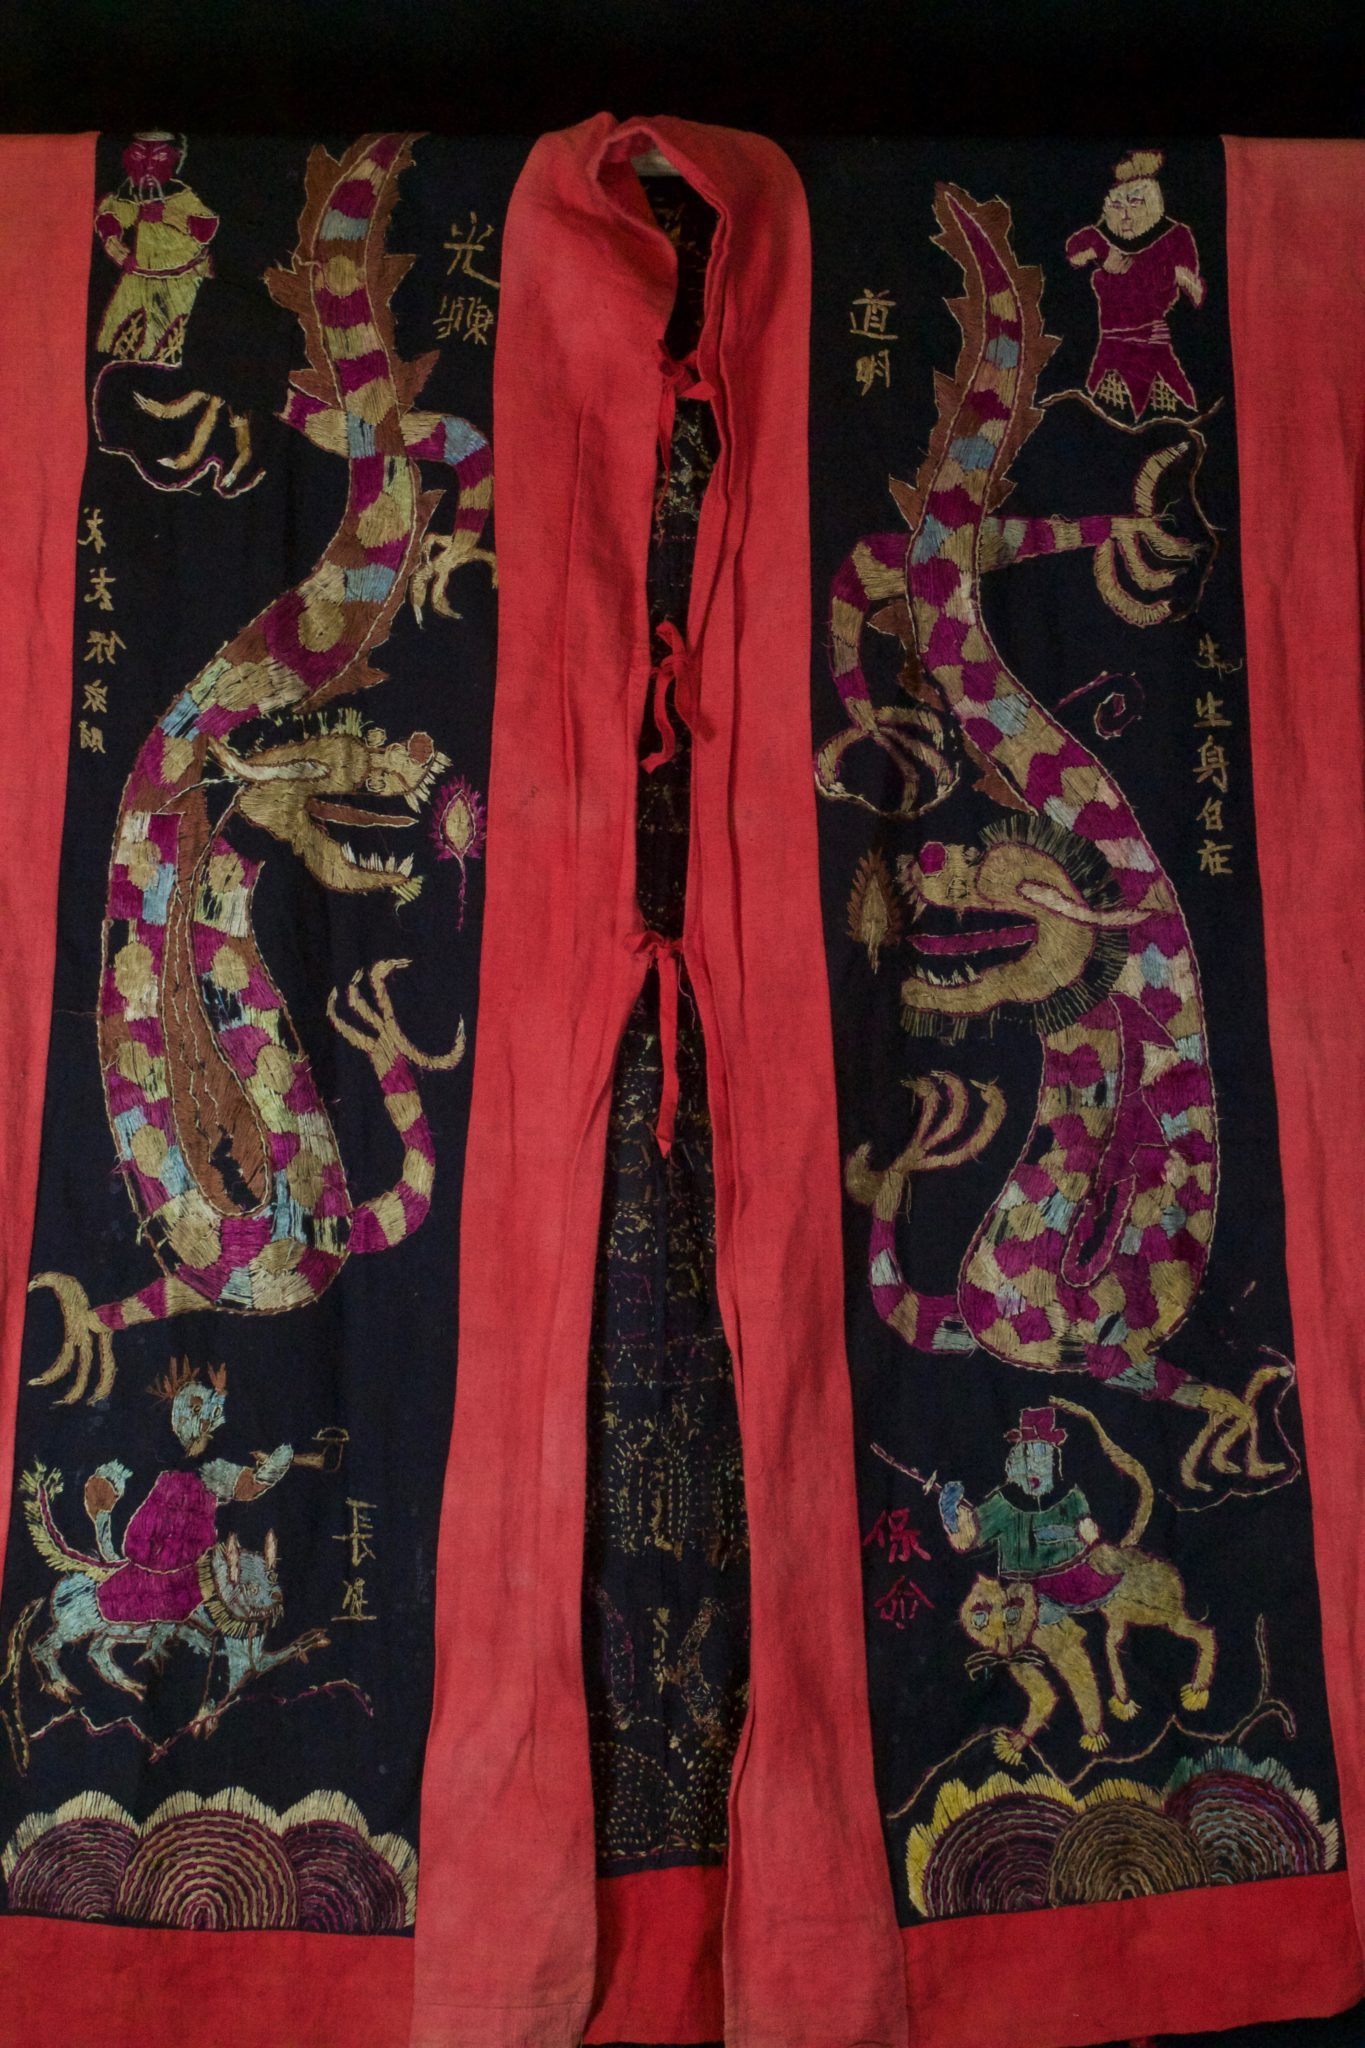 "Dragon Robe/Ritual Cloak (front), Vietnam, Tao people, Early to mid 20th c, Cotton, silk embroidery. Worn only by high level priest/shaman for all ceremonies. The motif typically includes all the deities of heaven to clothe the shaman in the universe for protection. Not a vain adornment, it is a reminder of man's place in the hierarchical order. Originally a female costume. Long ago shamans were women and men the providers. Not being encumbered by childbirth and rearing, men replaces women as shamans but retained this part of the sacred costume. 48"" x 39"", $2700."